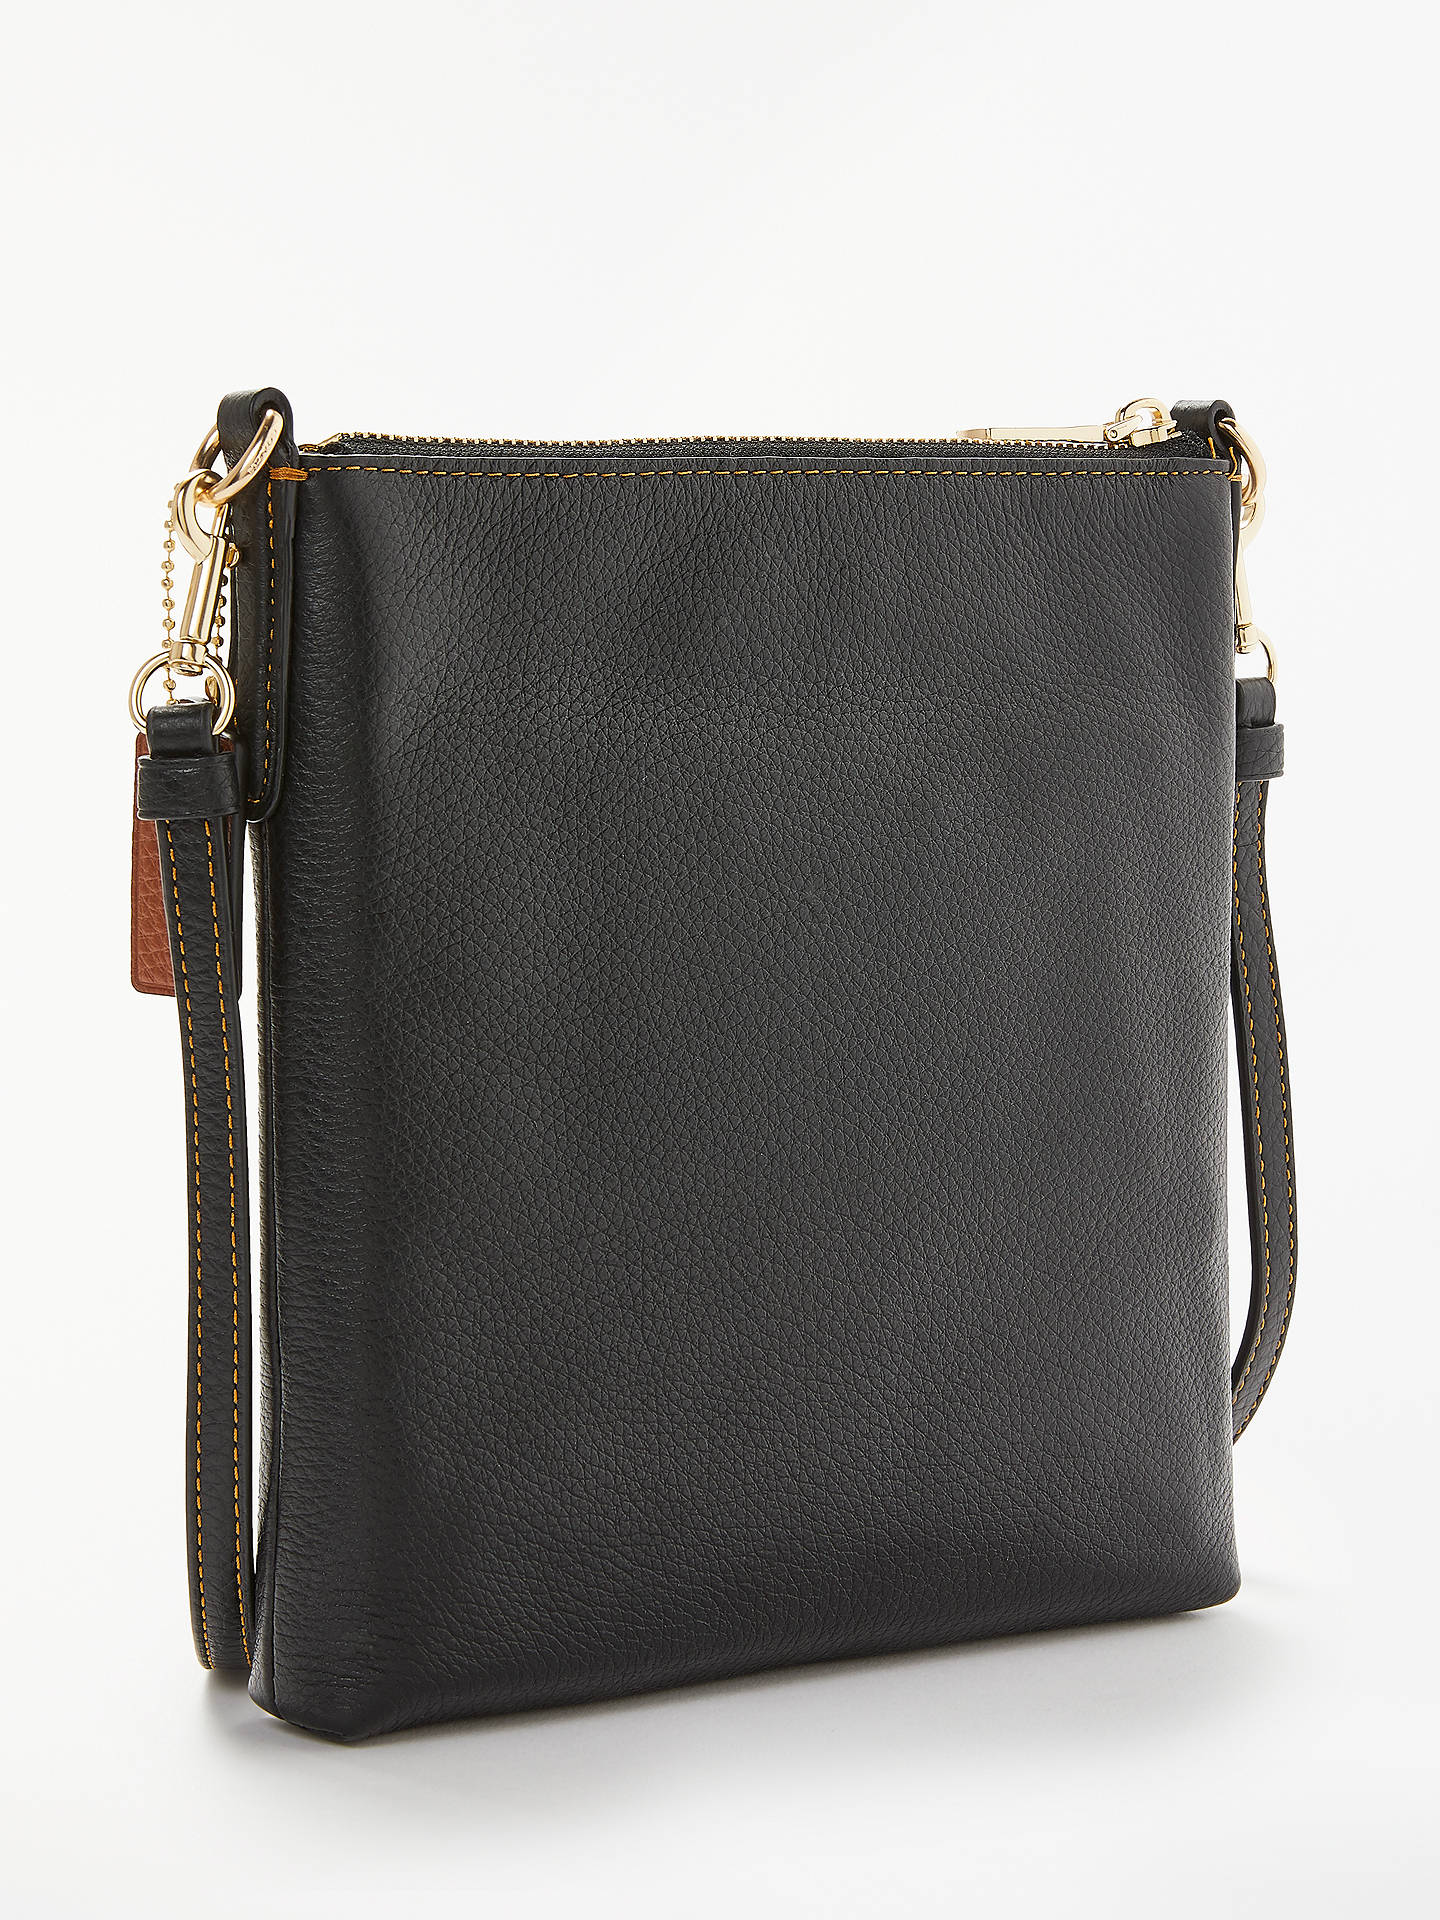 Disney x Coach Minnie Leather Messenger Cross Body Bag at John Lewis ... 941dafeb48d04